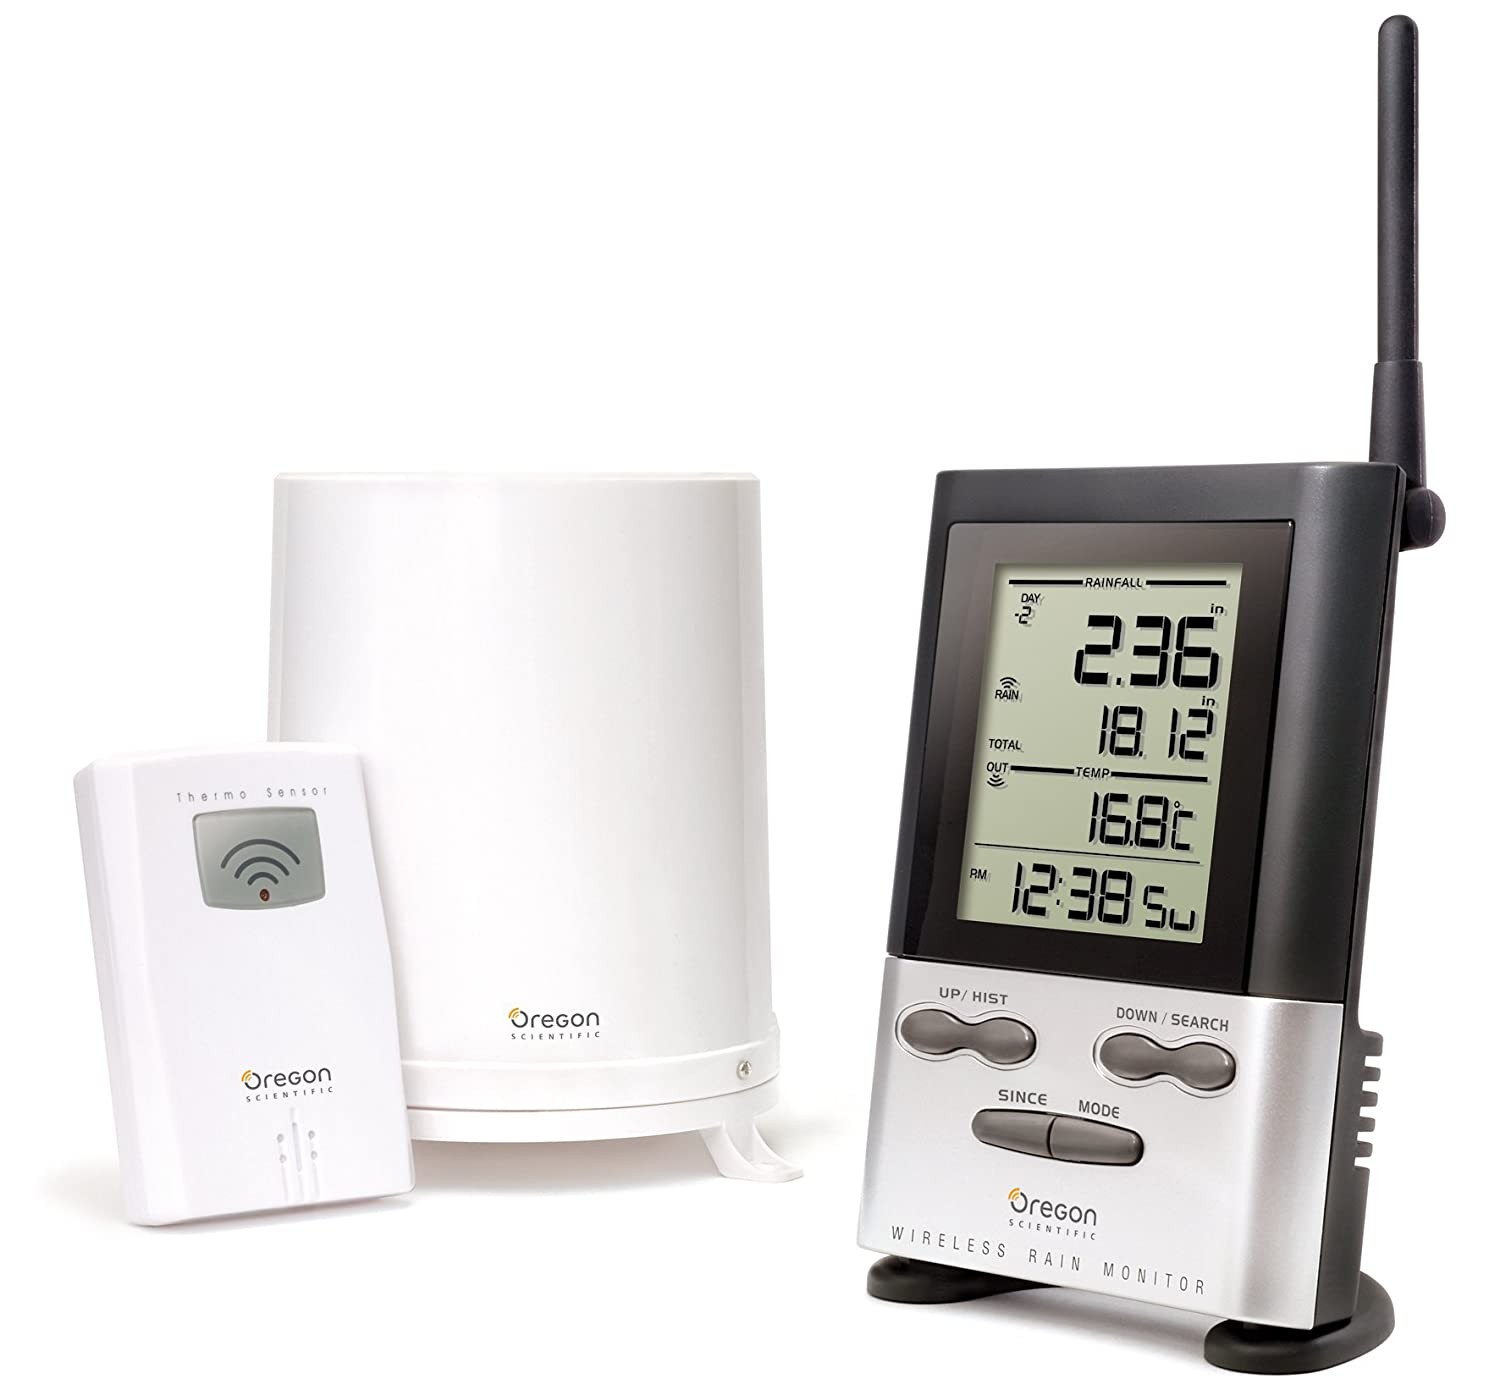 Top 10 Best Wireless Weather Stations Buying Guide 2016